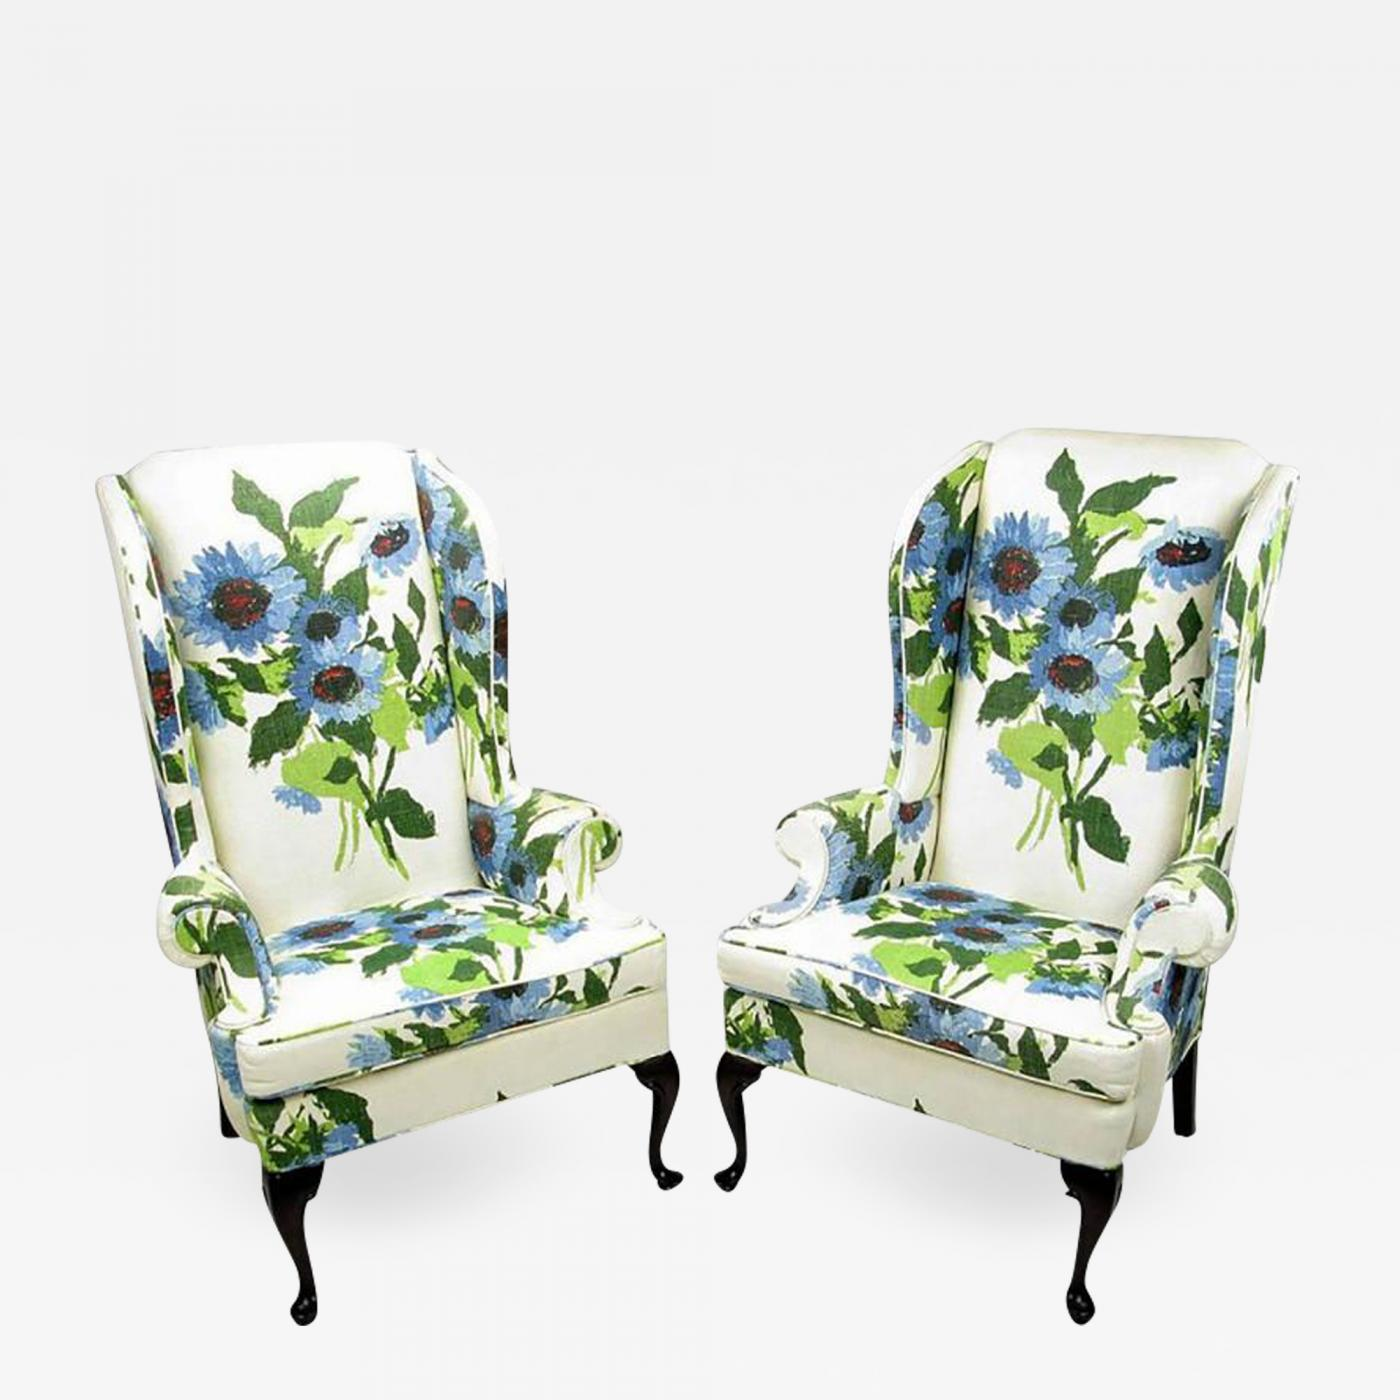 Pair of Elegant and Bold Floral Linen Upholstered Wing Chairs by Hickory Chair  sc 1 st  Incollect & Hickory Chair Co. - Pair of Elegant and Bold Floral Linen Upholstered ...